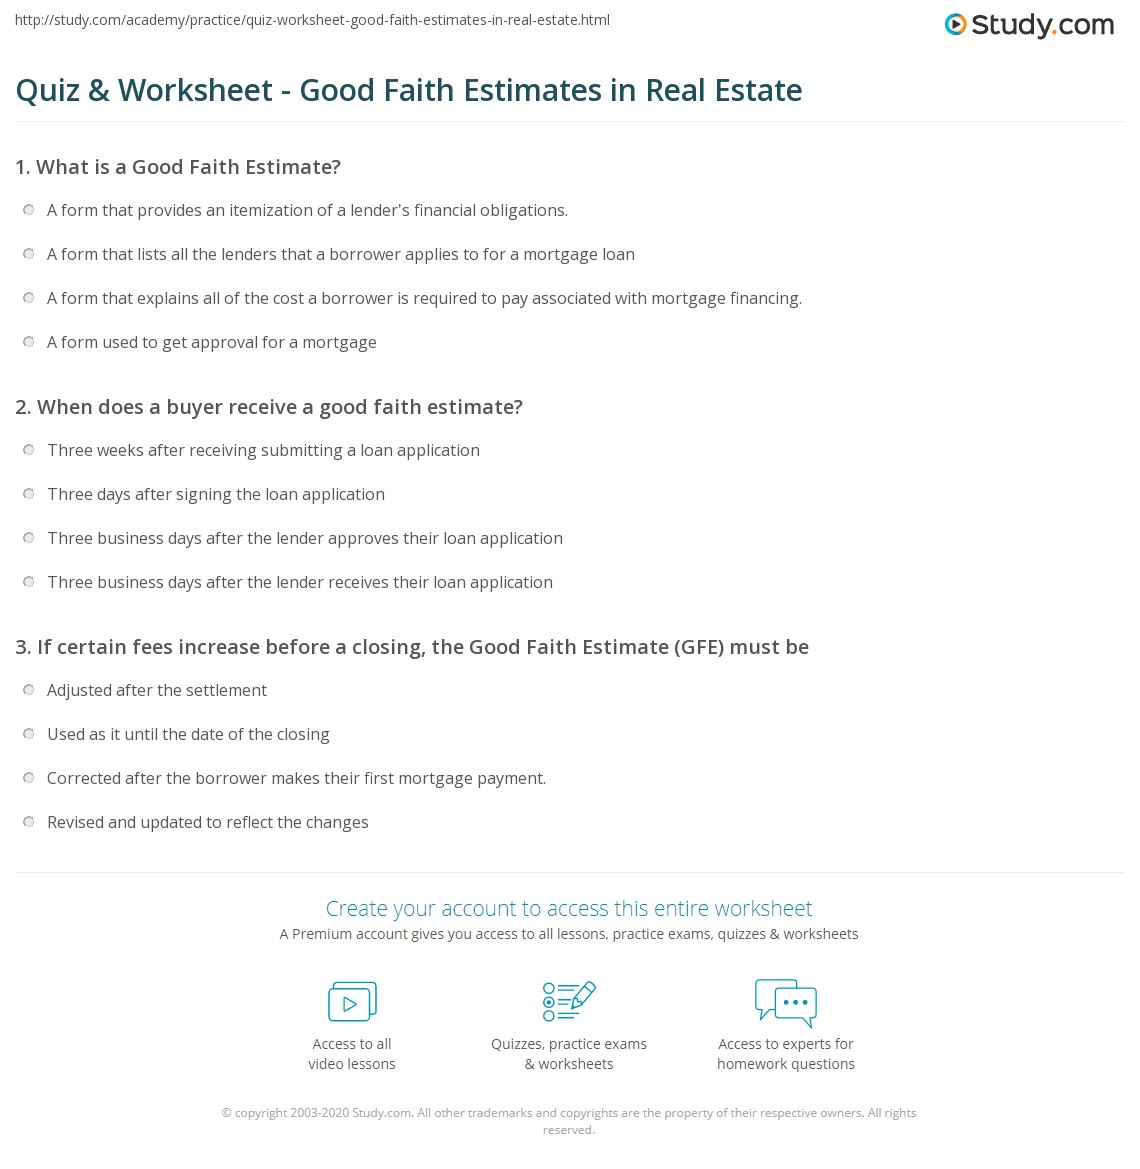 Free Worksheet Good Faith Estimate Worksheet good faith estimate worksheet delibertad quiz estimates in real estate study com